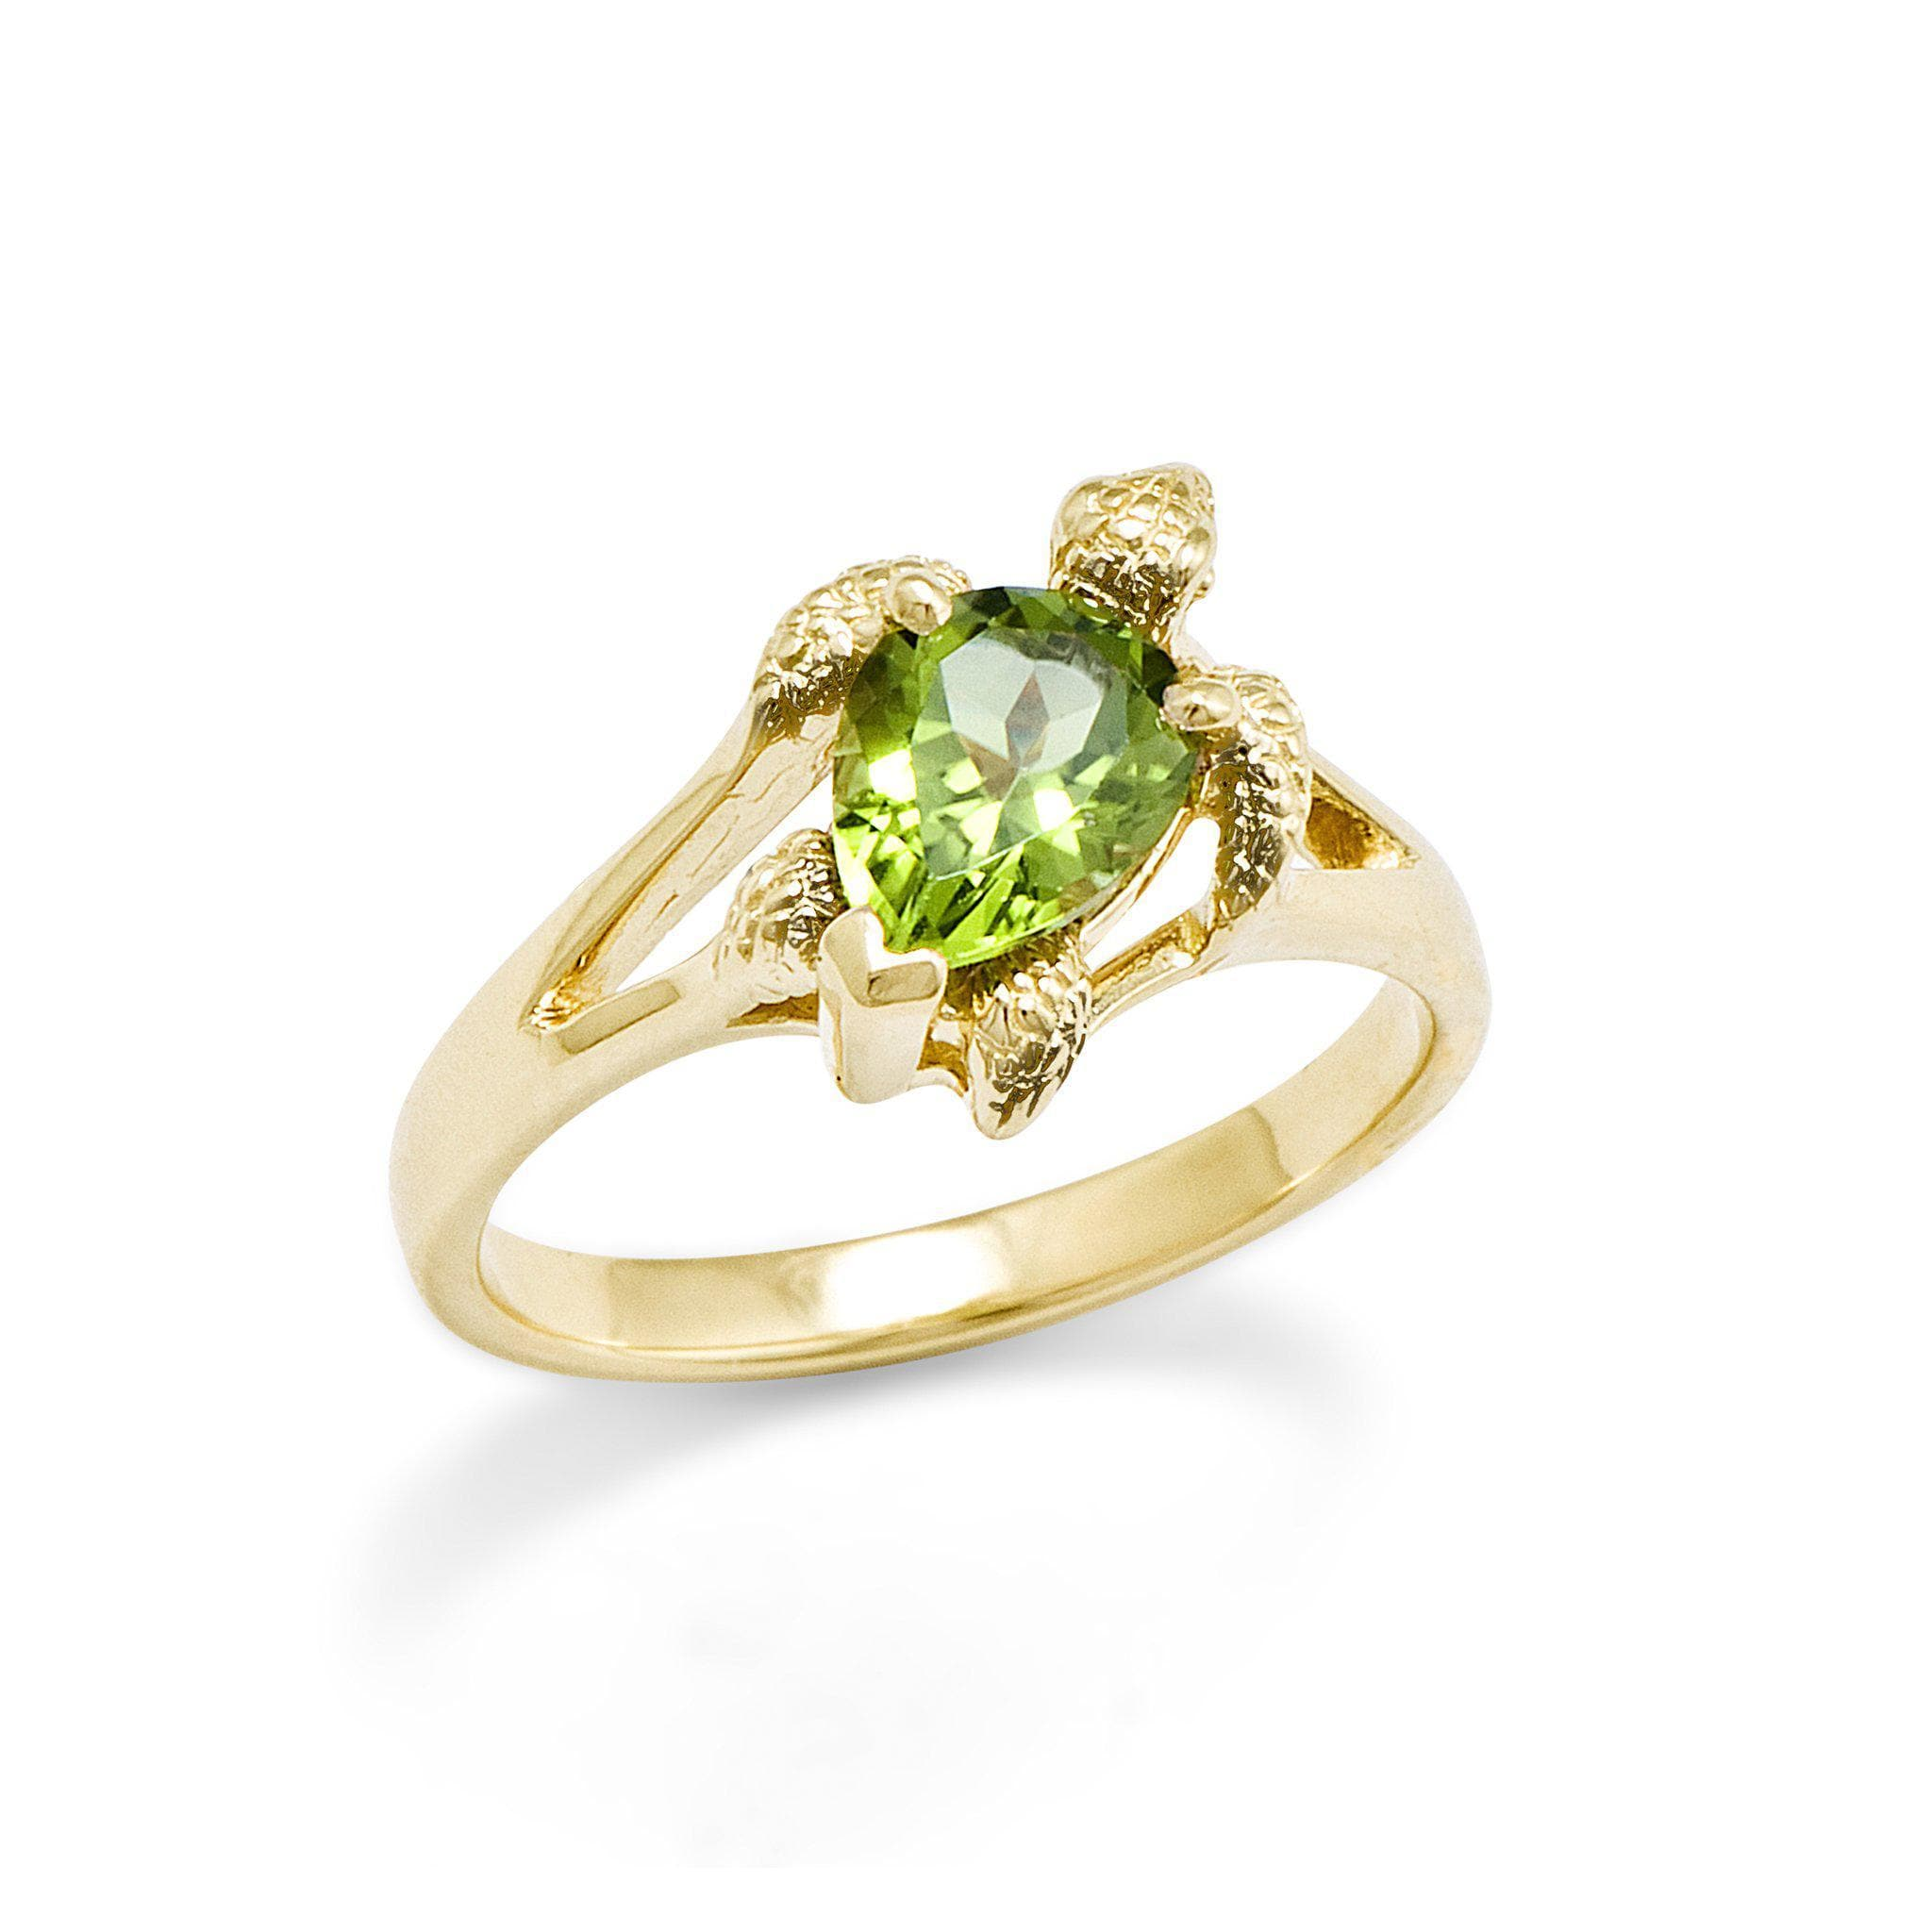 com inspirational lovely rikof elegant peridot jewelry w t kohl and gold diamond rings carat amp wedding tagged heirloom of s living